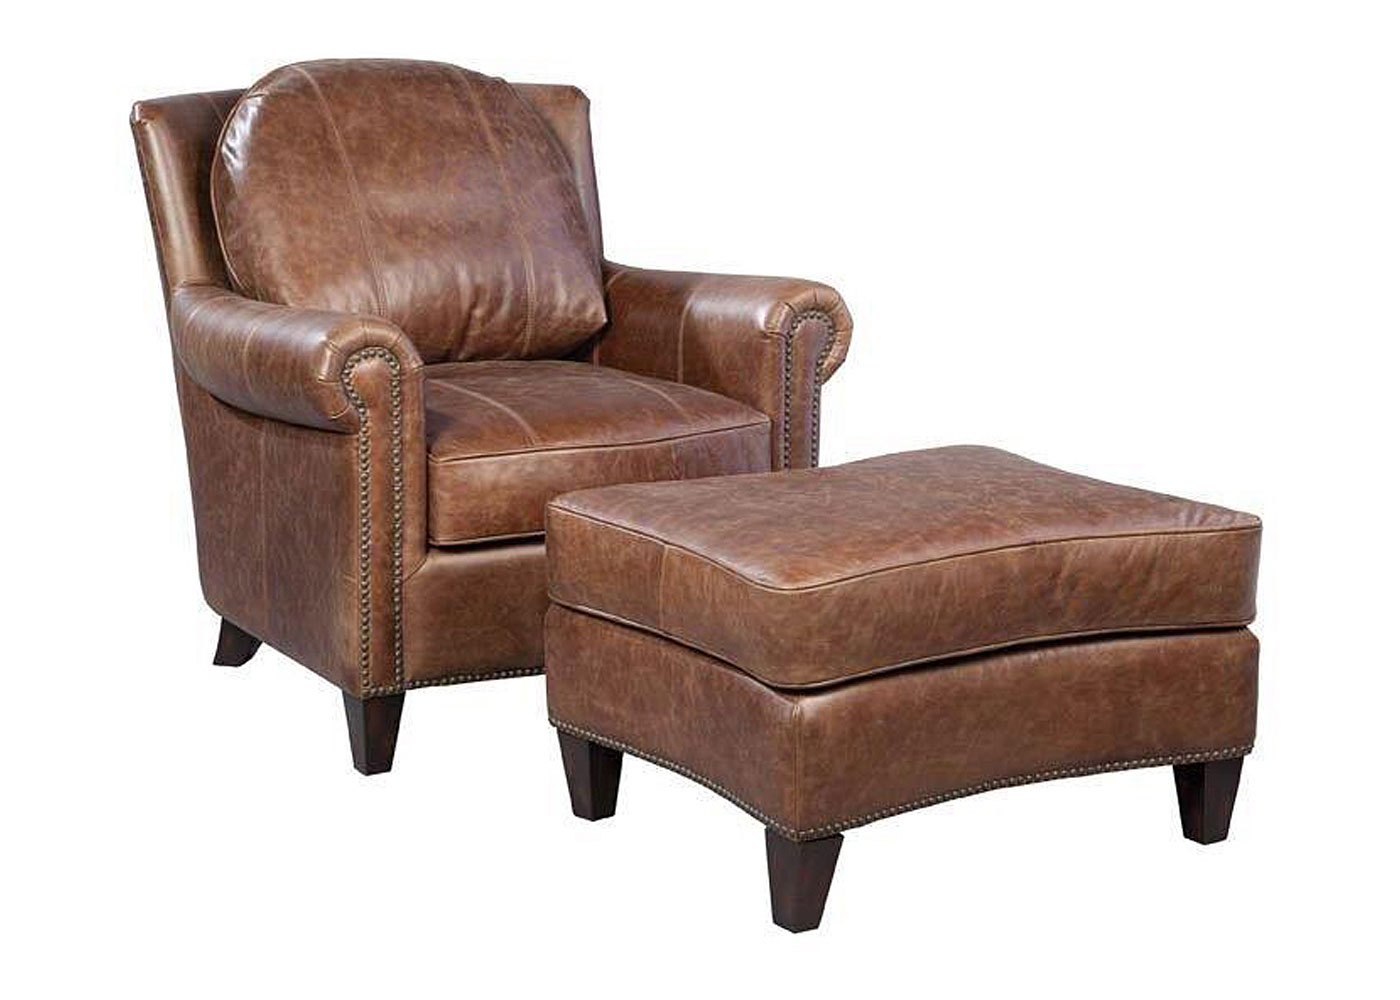 leather accent chairs massage chair with heat vintage brown nails club furniture